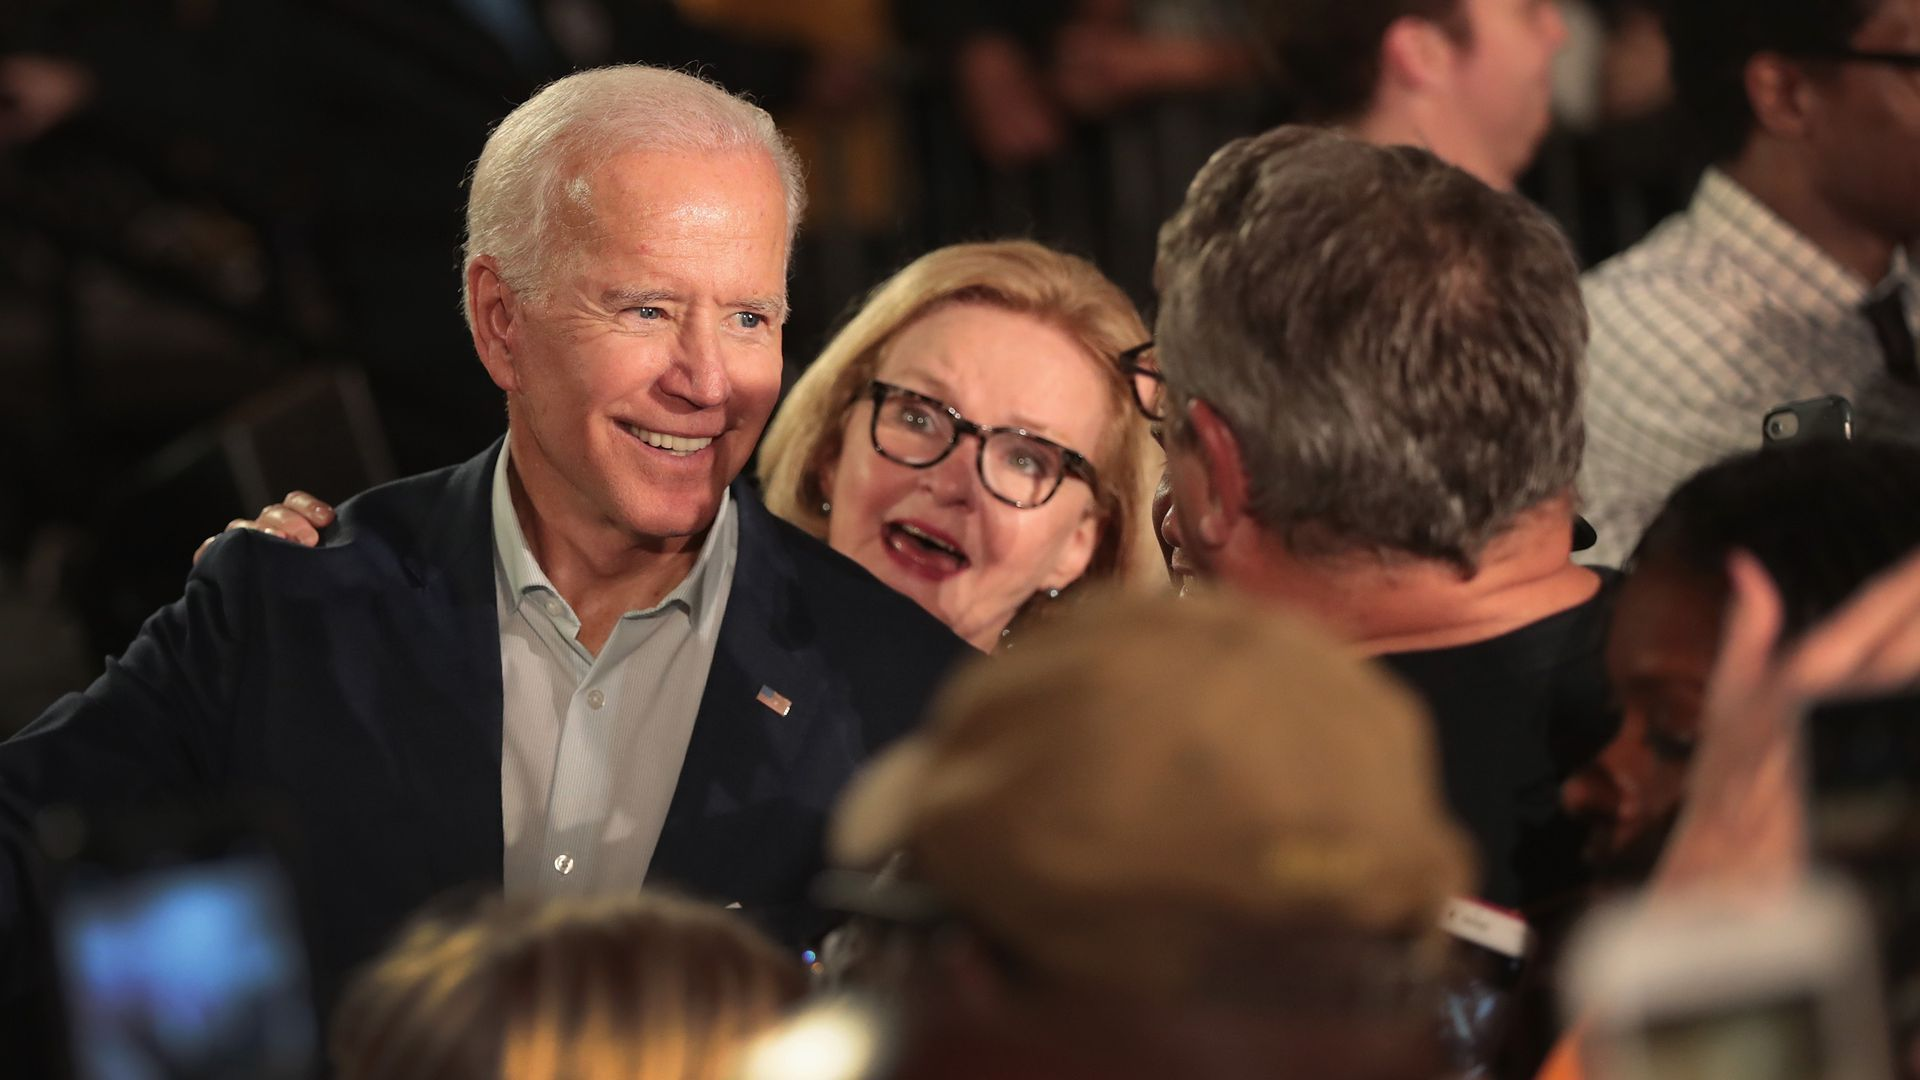 Joe Biden with Sen. Claire McCaskill. Photo: Scott Olson/Getty Images